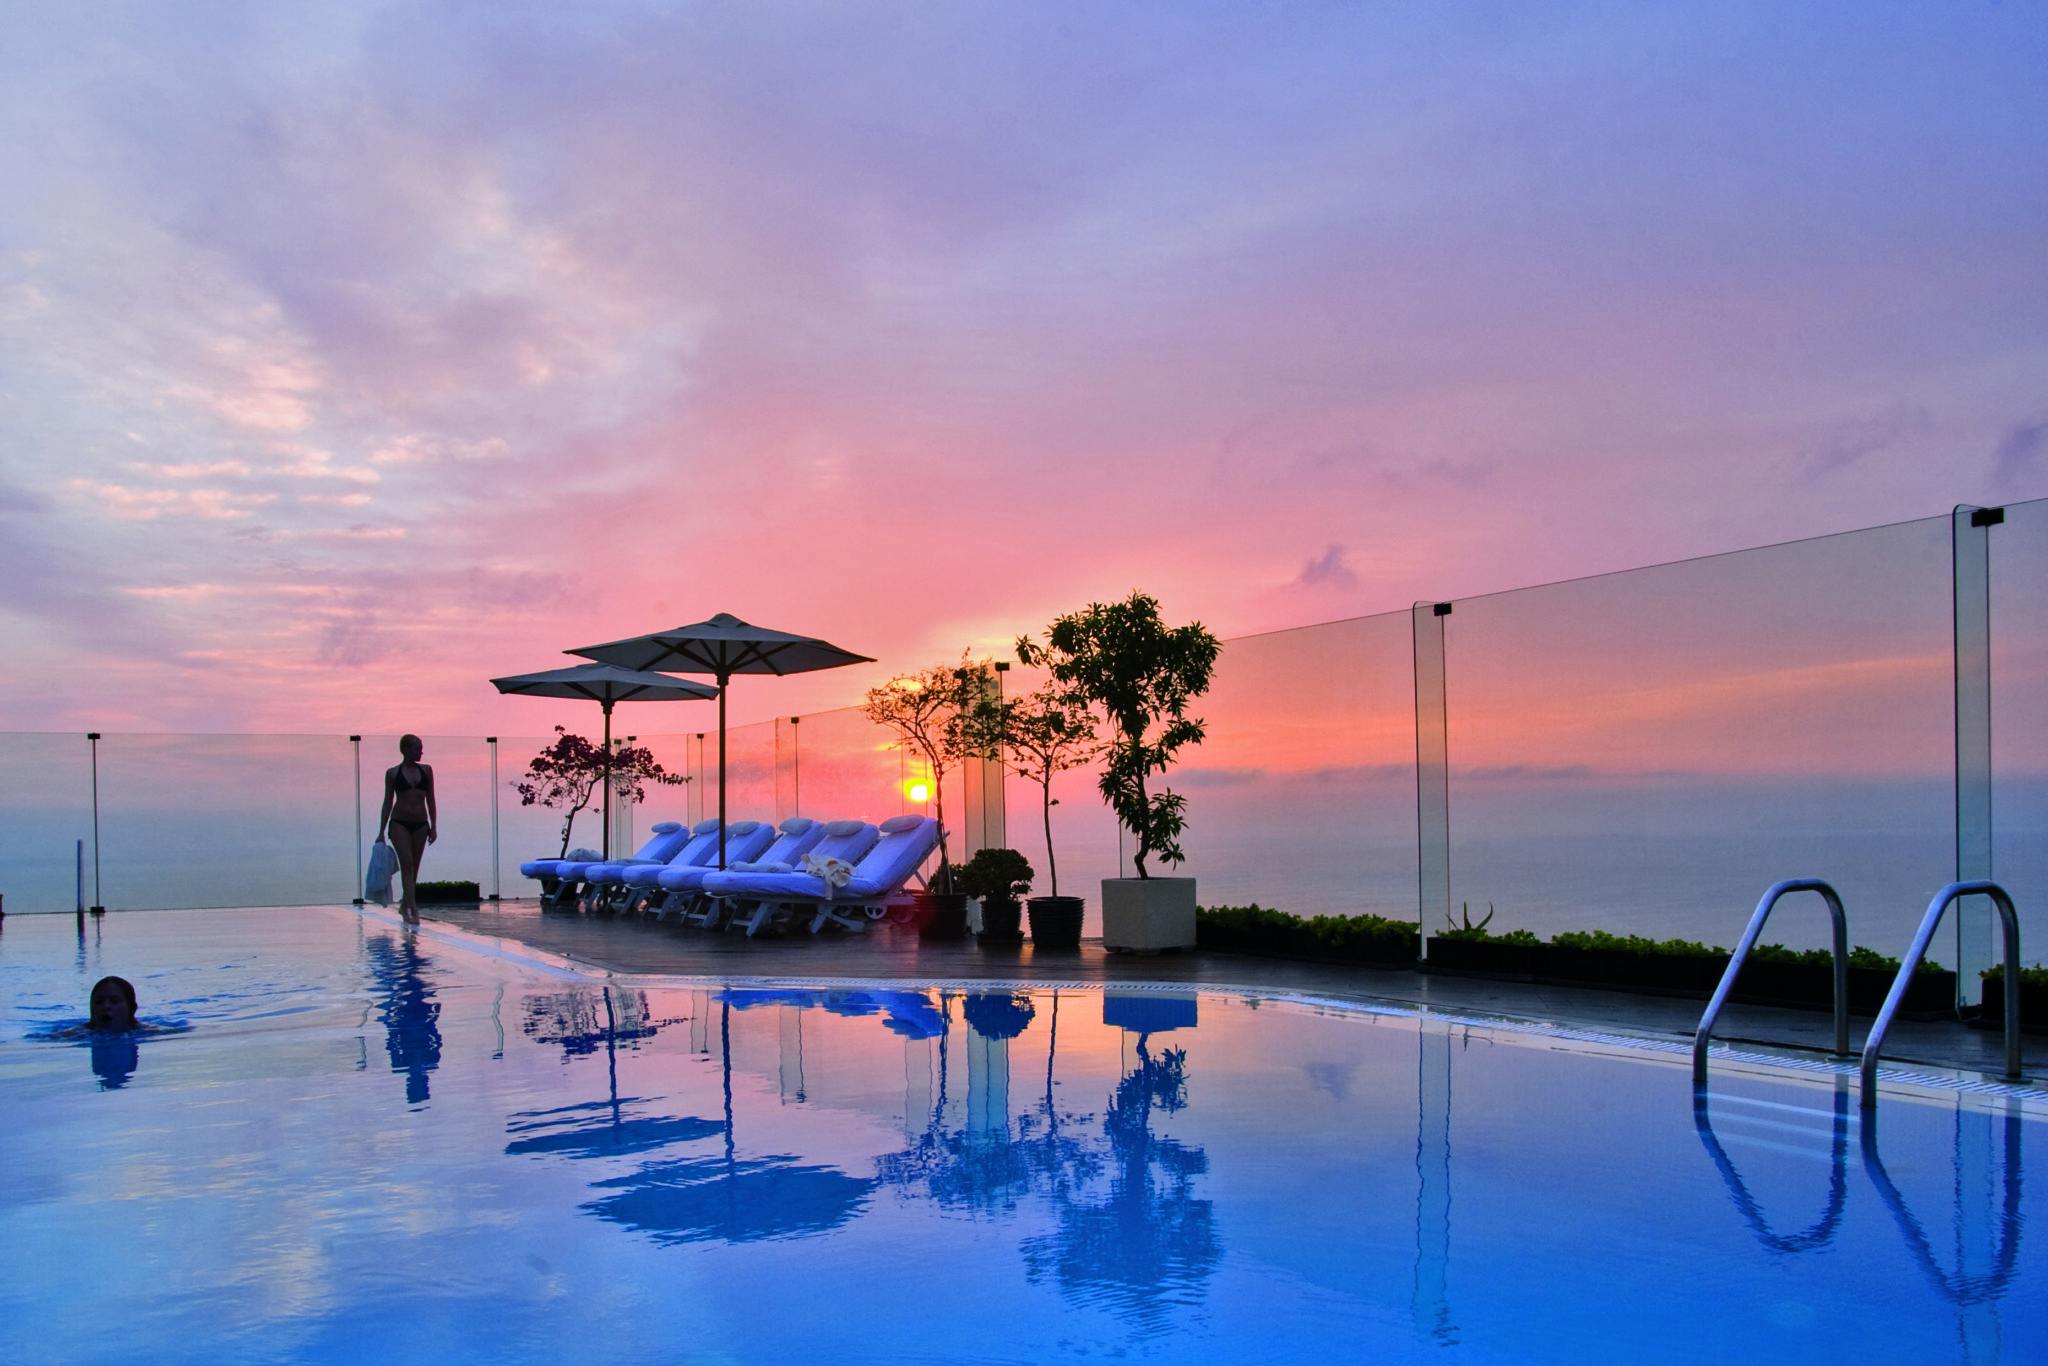 Miraflores park hotel peru infinity pools - Infinity pool europe ...